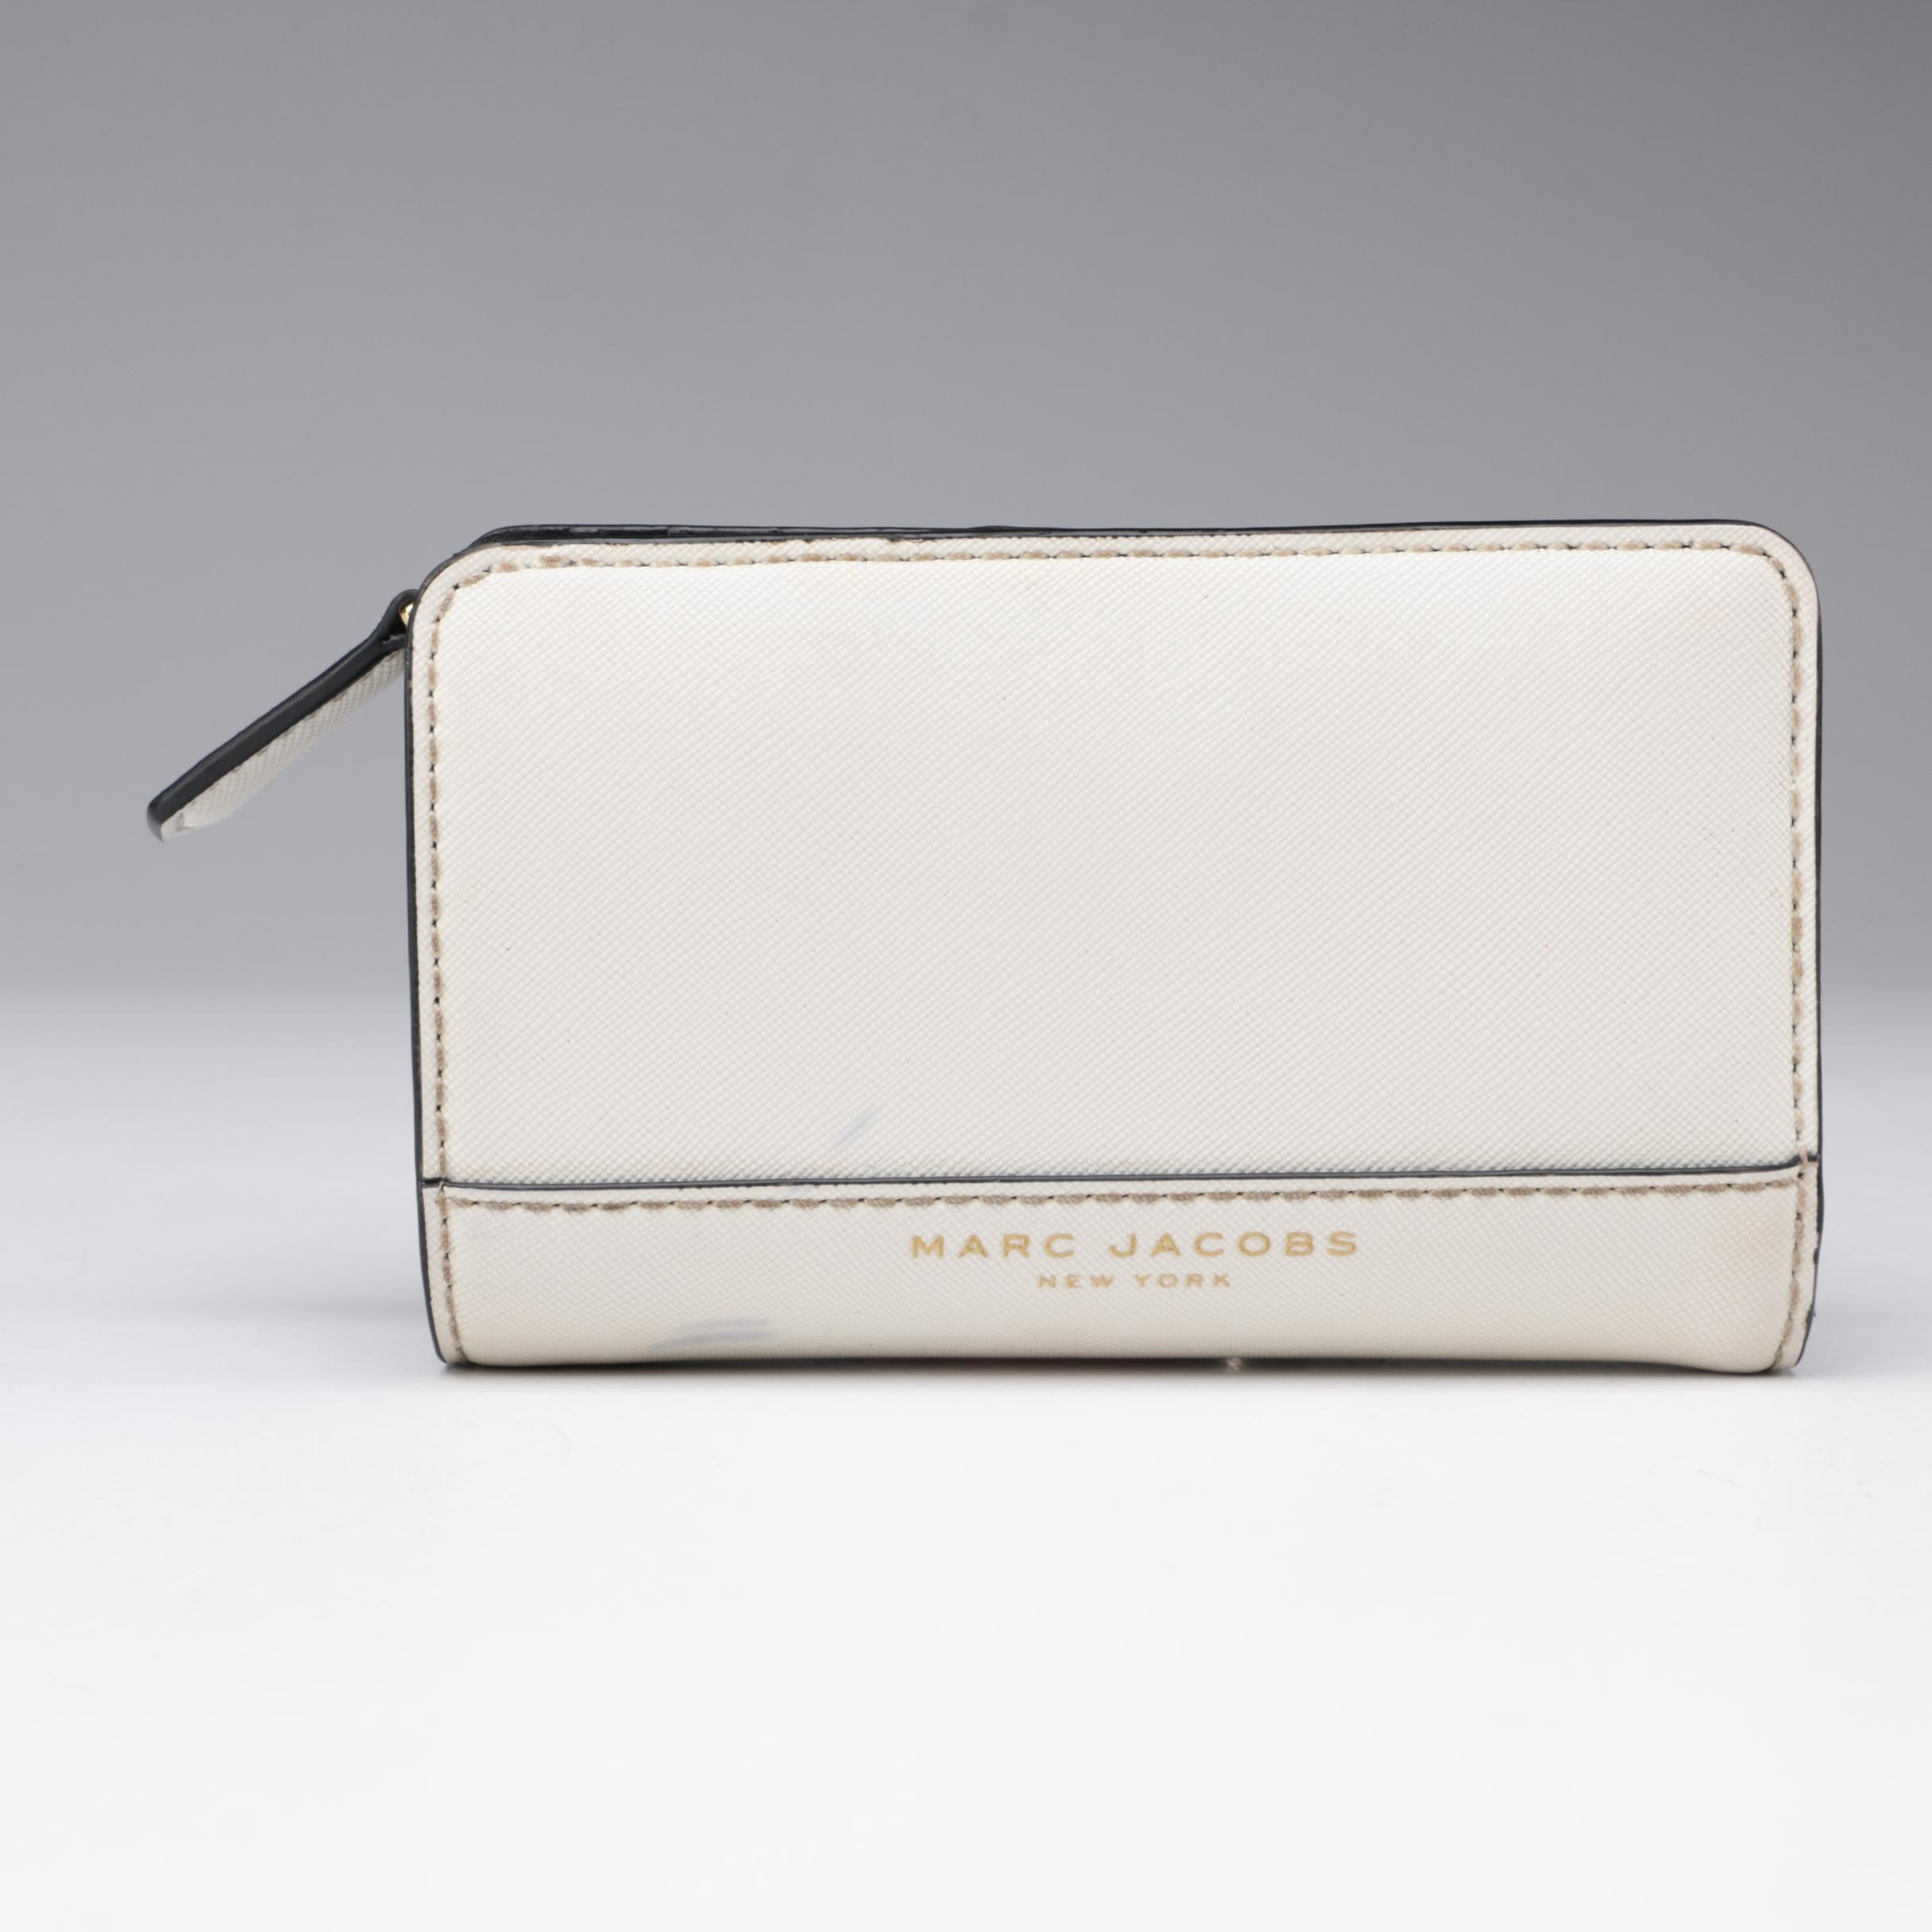 Marc Jacobs New York White Crosshatch and Black Leather Wallet